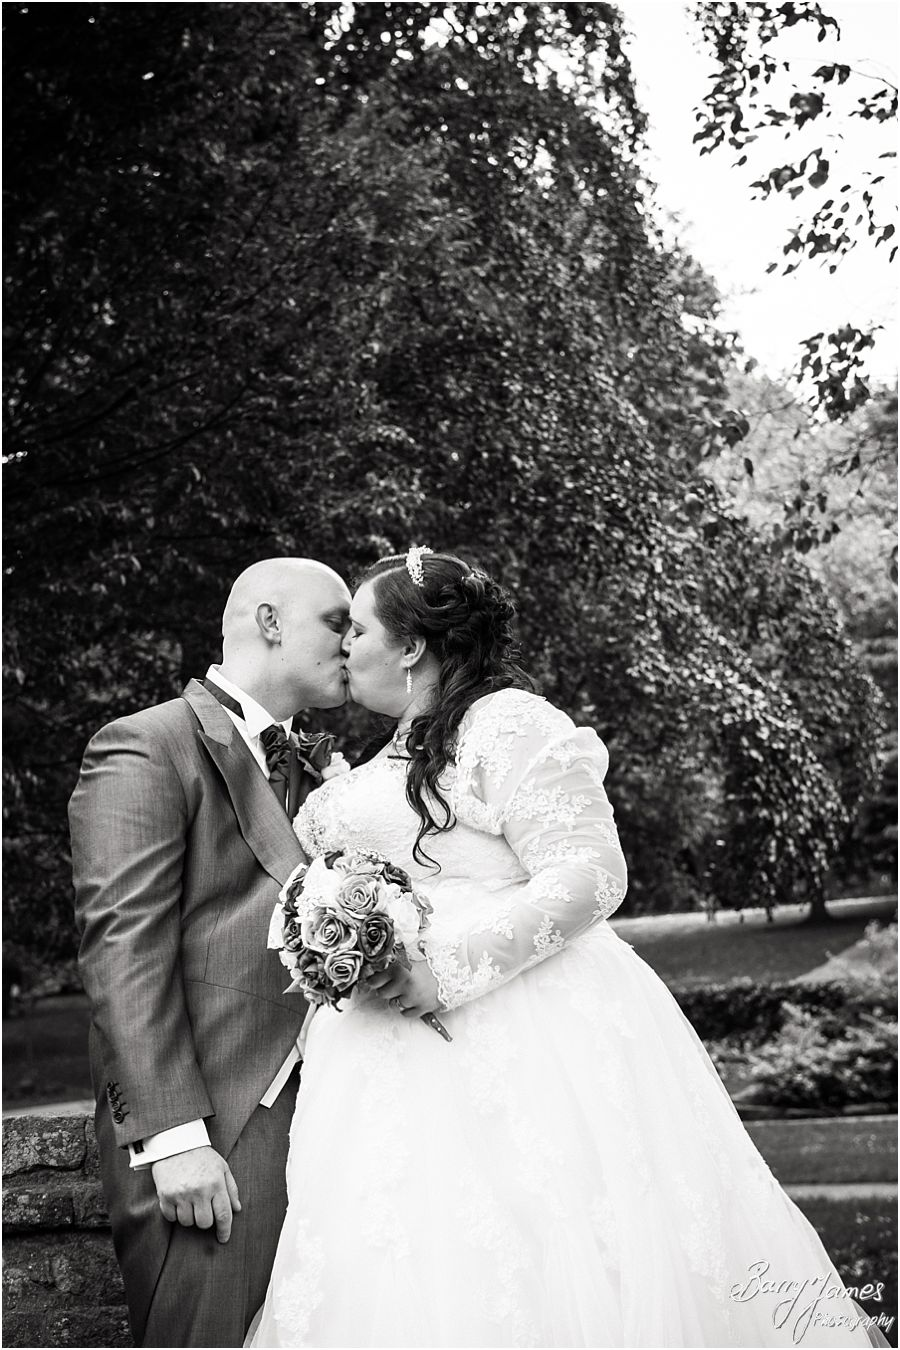 Beautiful wedding photography at Walsall Arboretum in Walsall by Professional Full Time Wedding Photographer Barry James